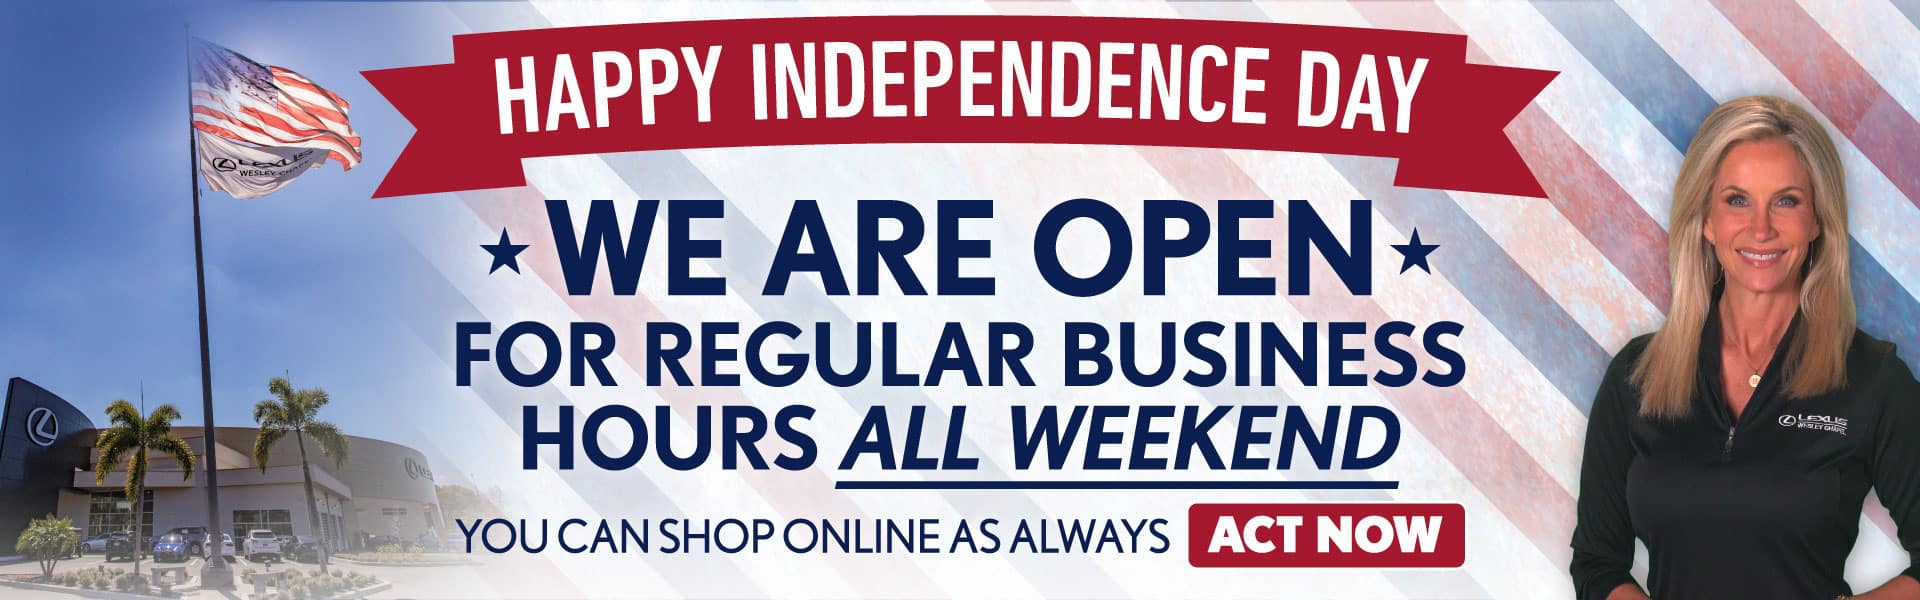 We are Open Regular Business Hours All Weekend